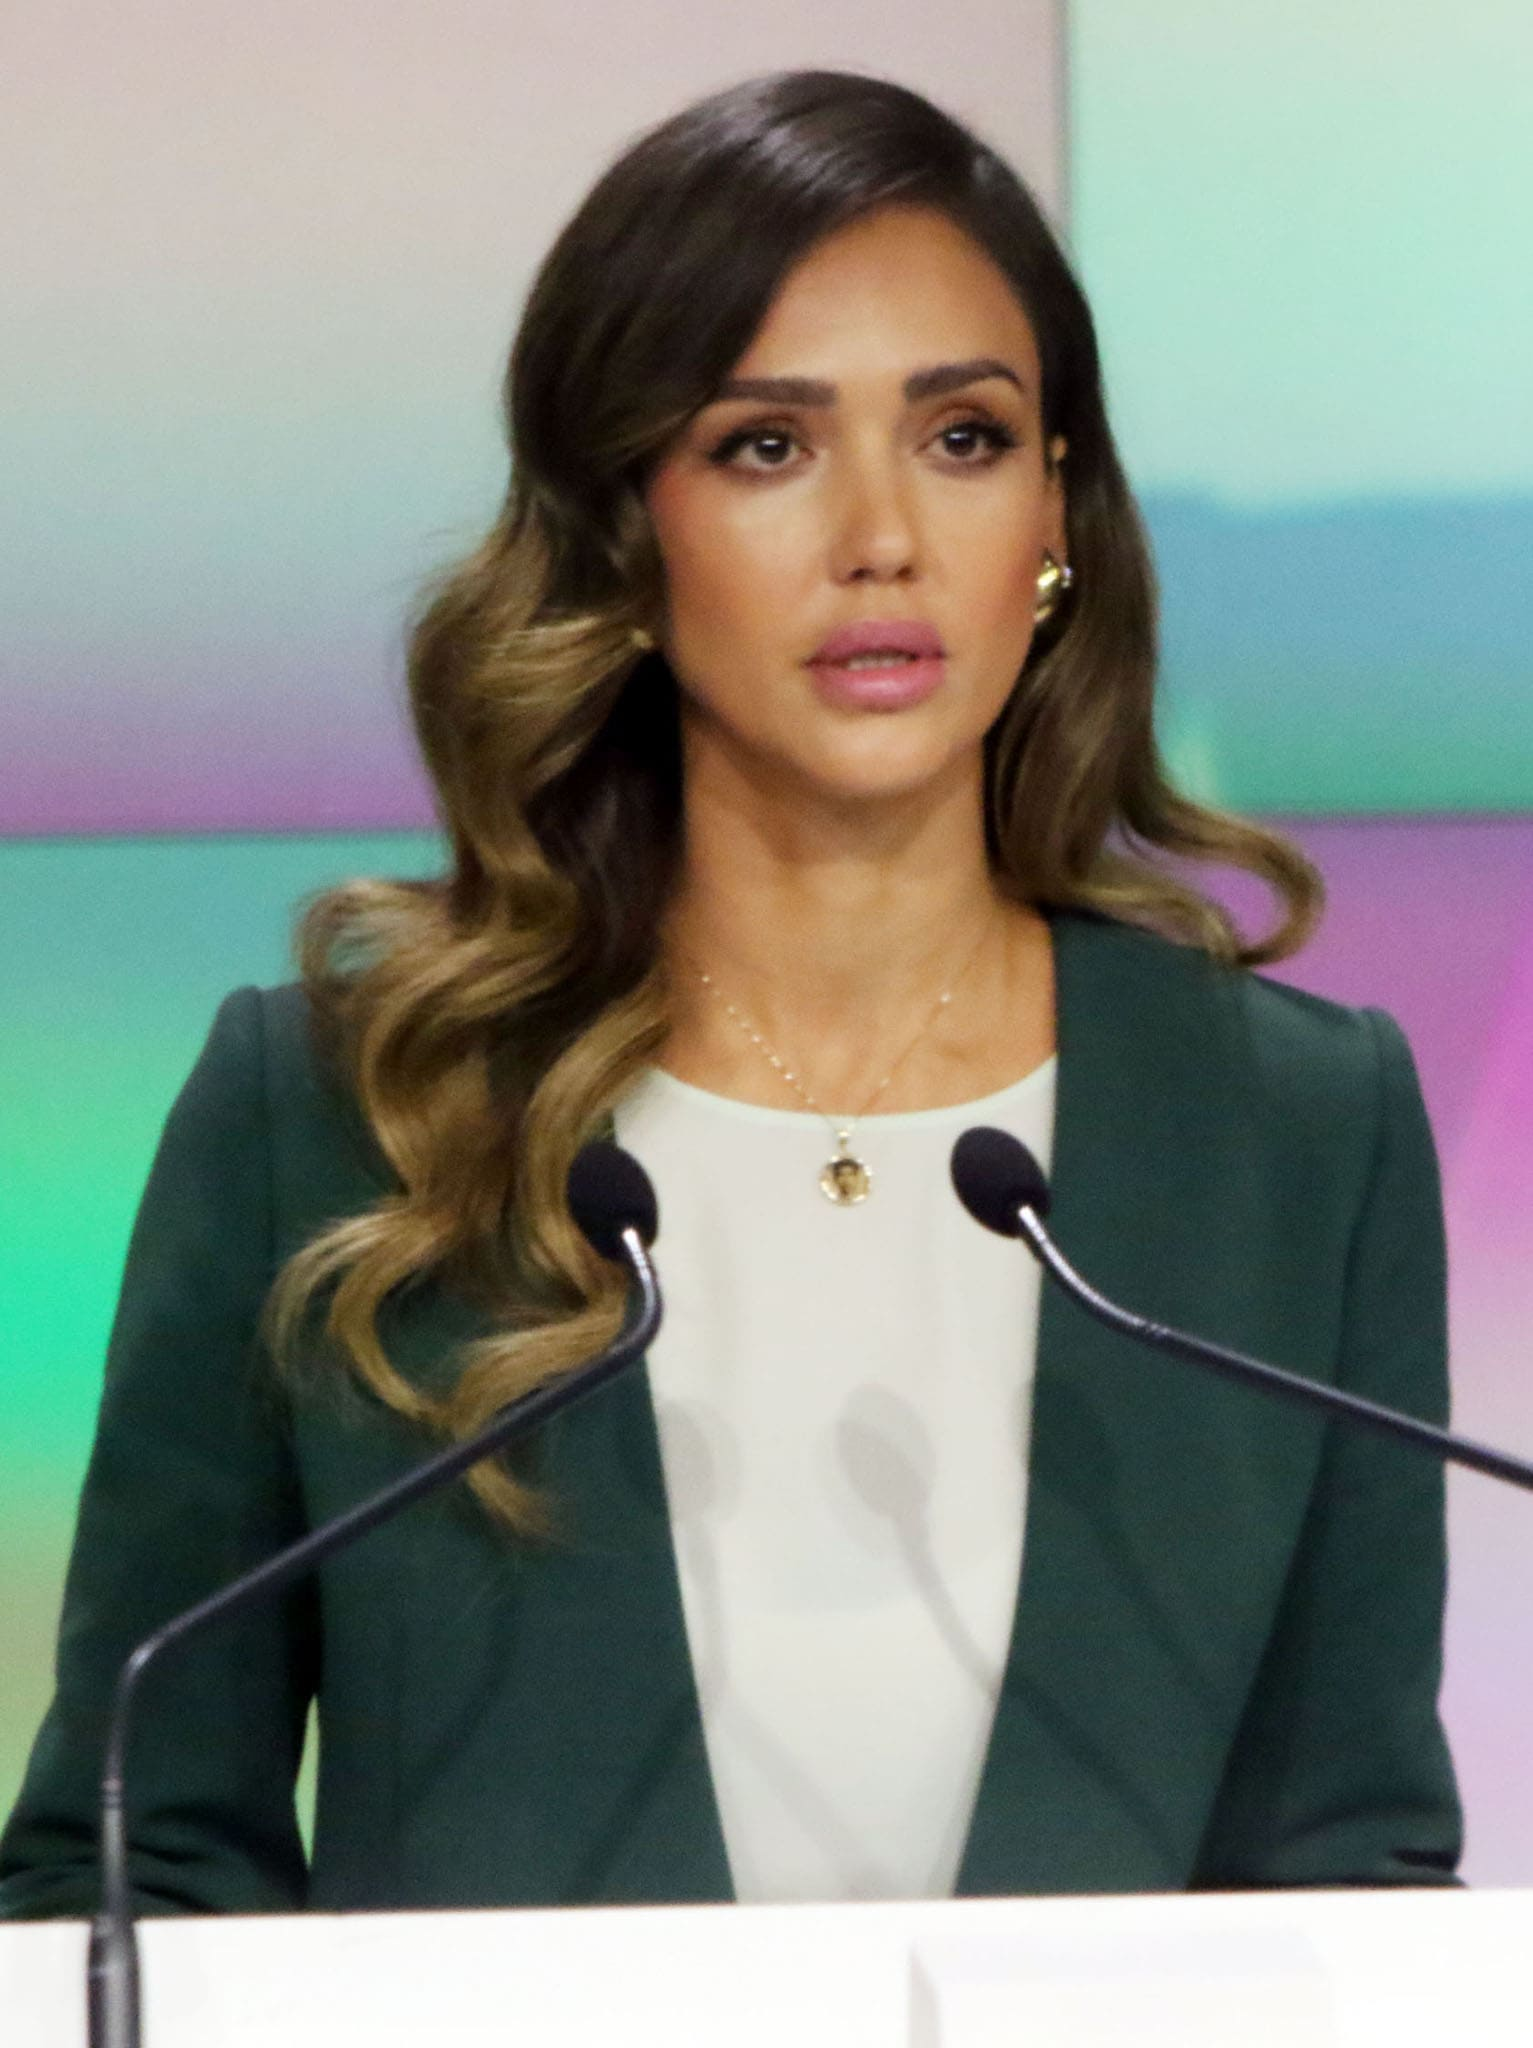 Jessica Alba glams up with side-parted waves, pink blush, pink lipstick, and bold eyebrows